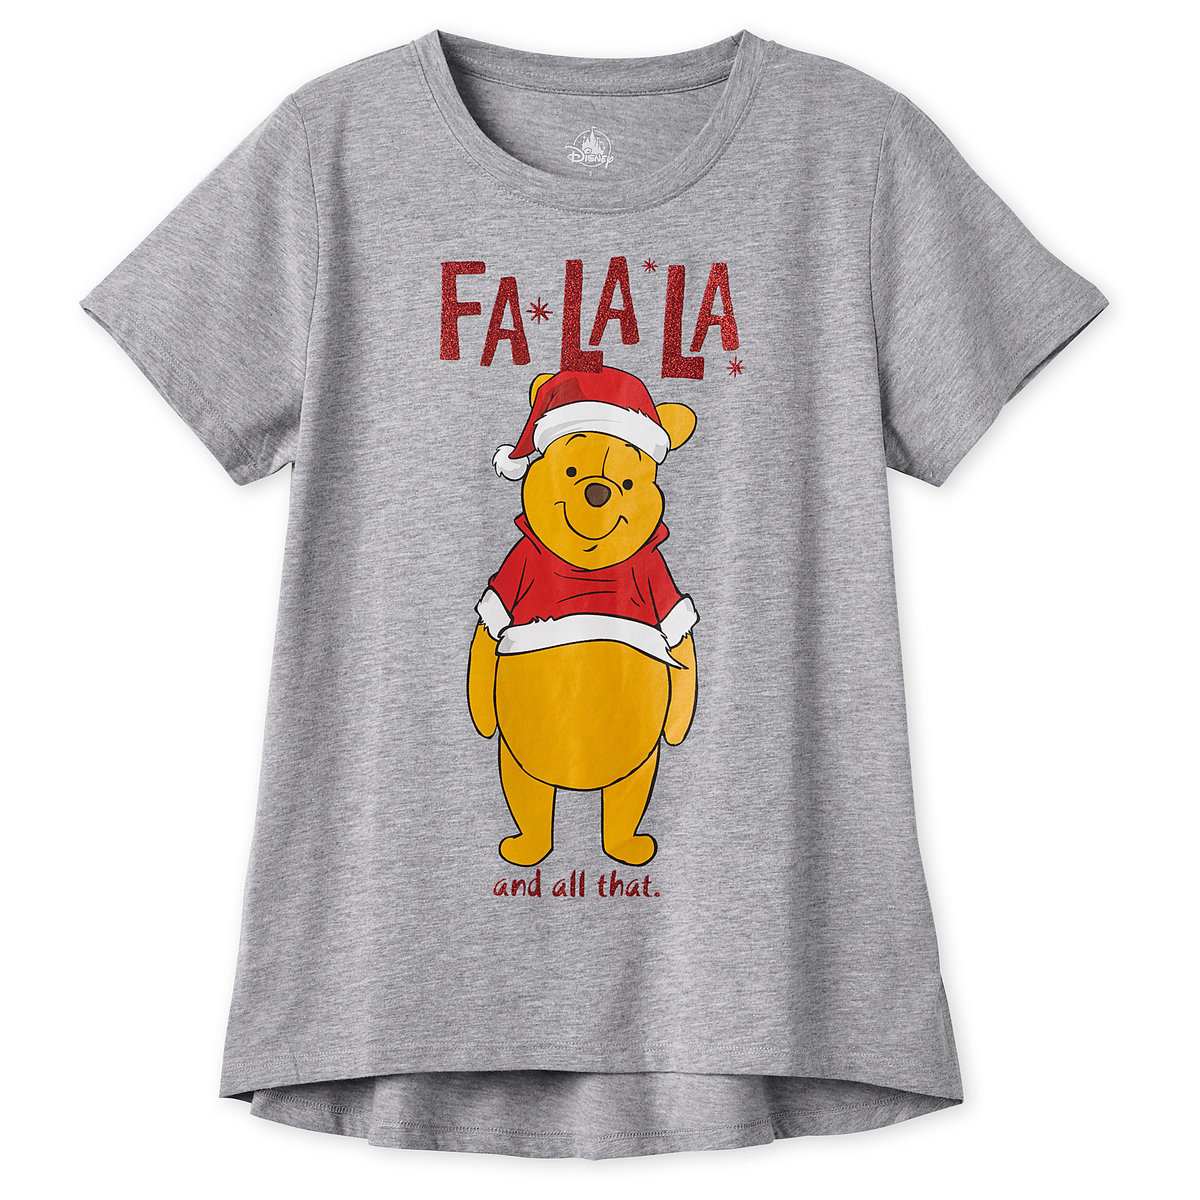 53c1a284 Product Image of Winnie the Pooh Holiday T-Shirt for Women # 1